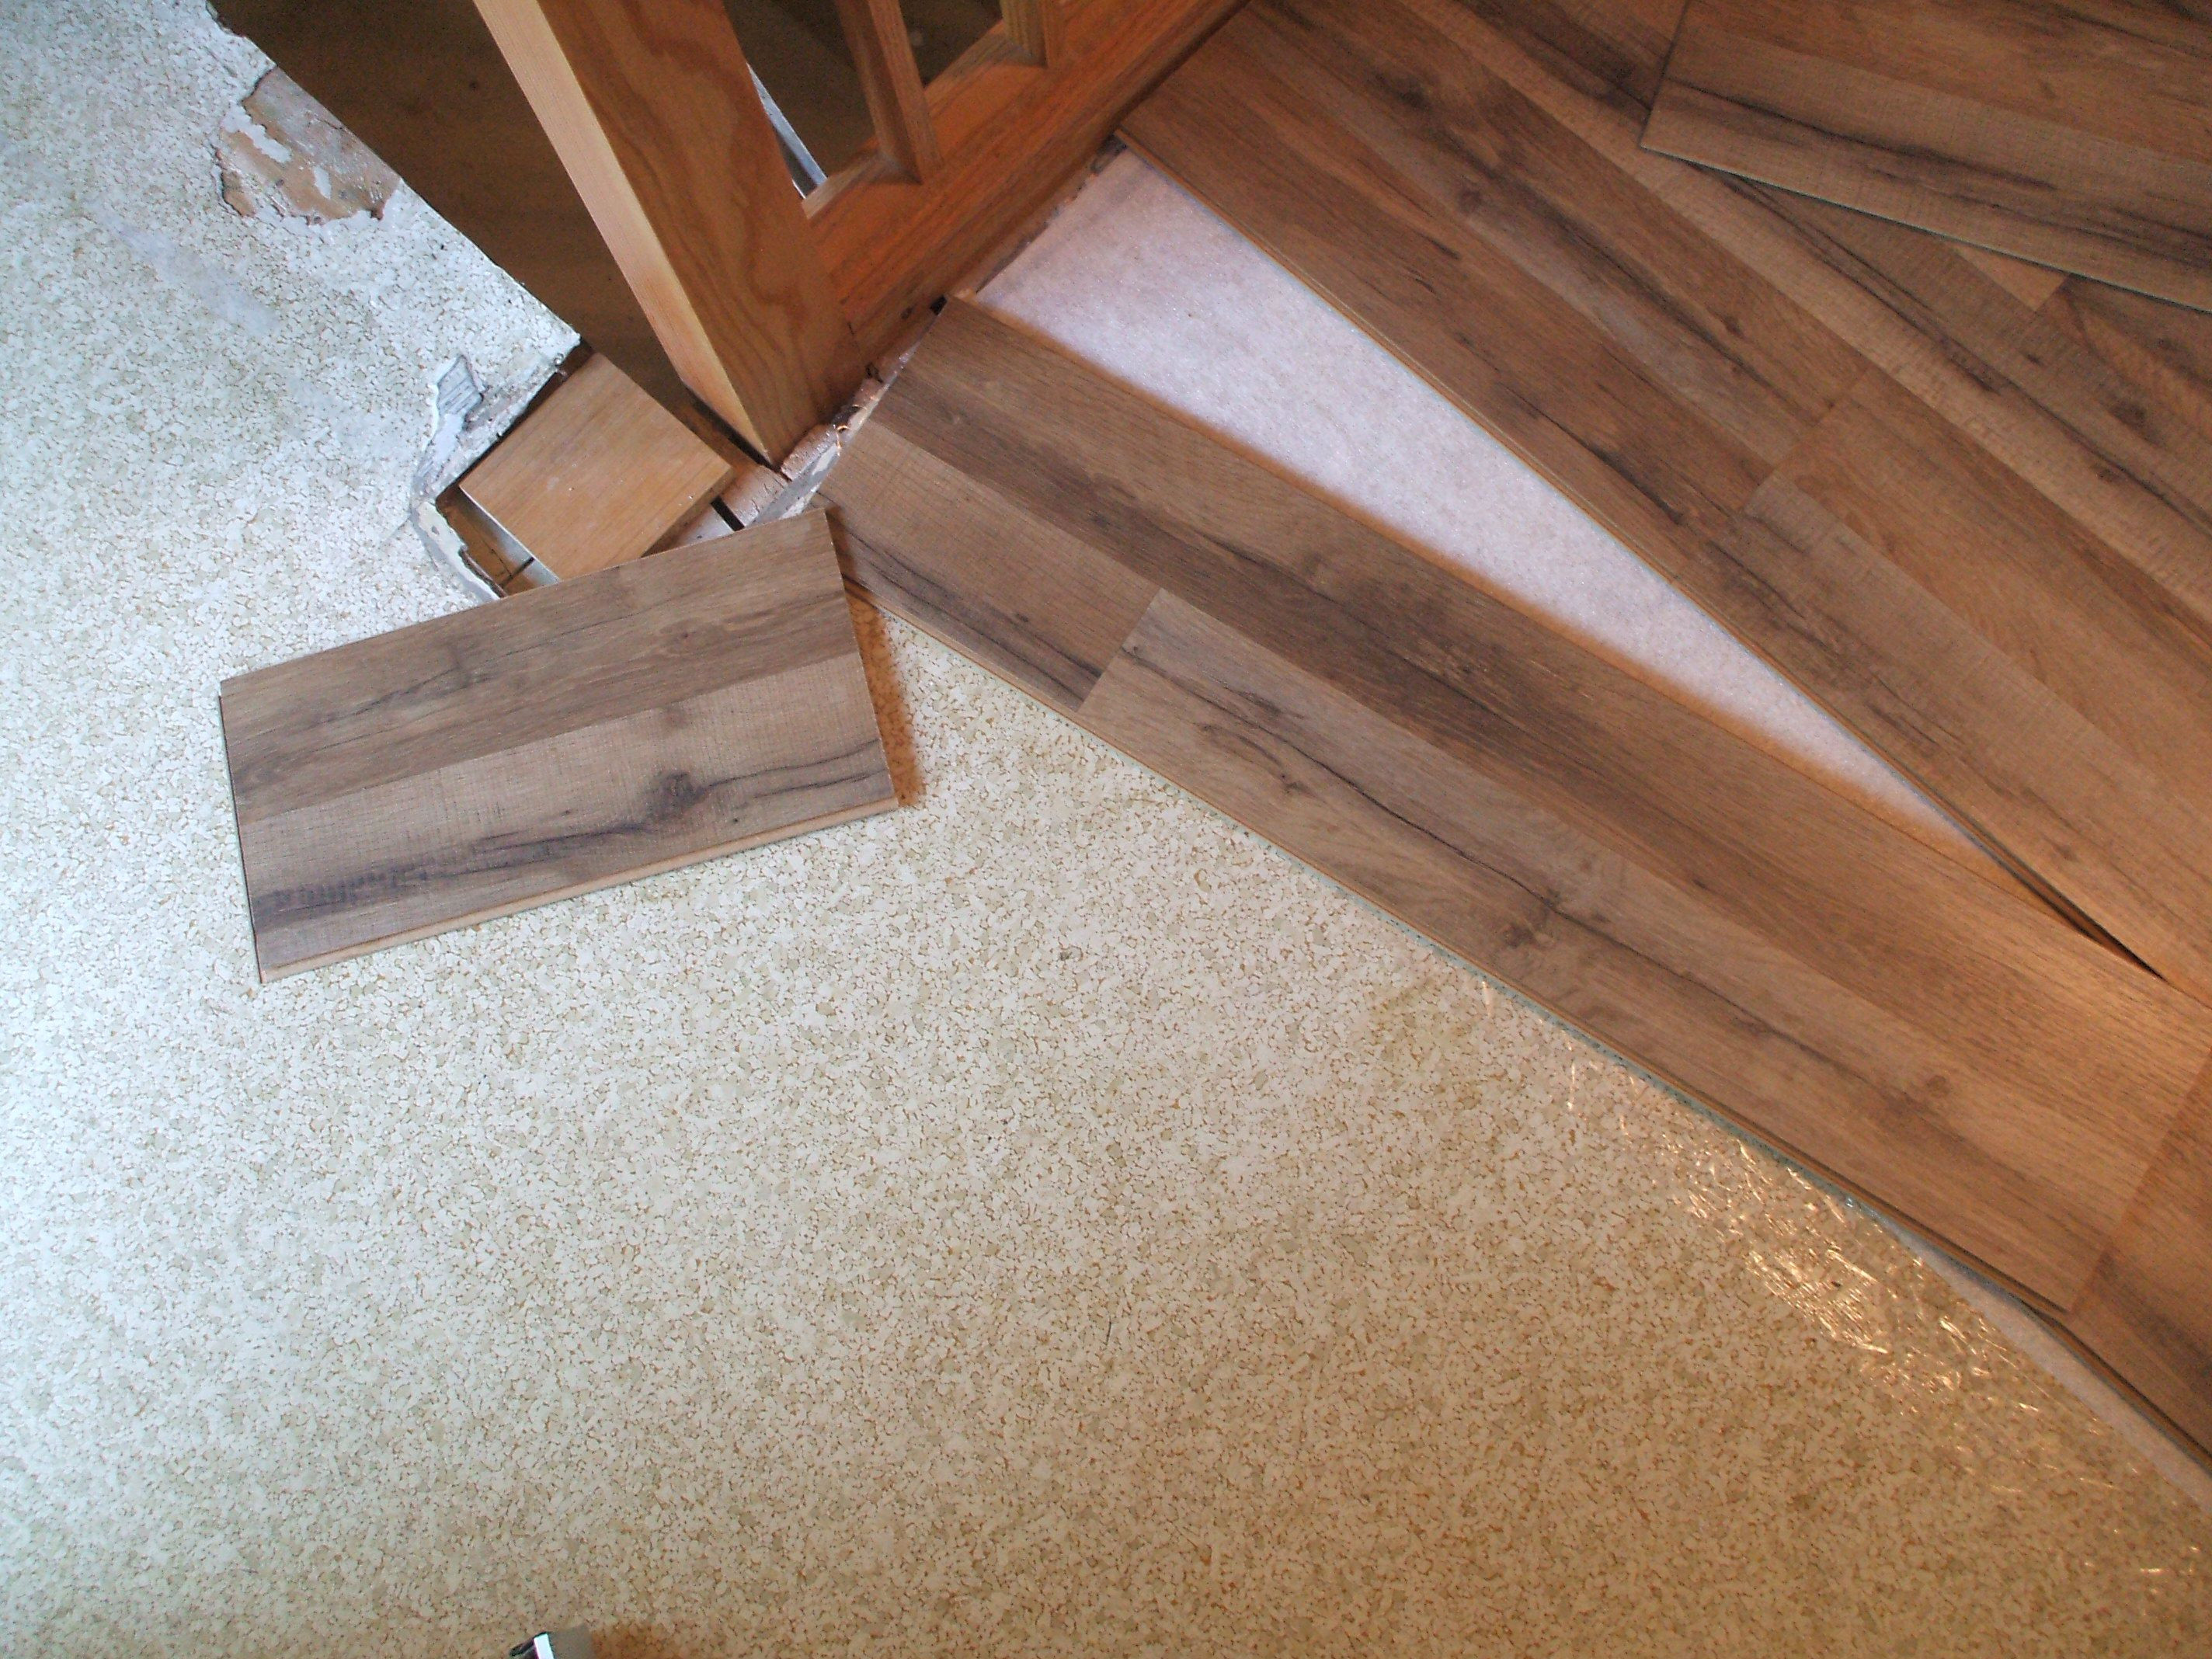 hardwood floor cost installation calculator of laminate flooring installation made easy in installing laminate end moves to next row 56a49e355f9b58b7d0d7ddbf jpg